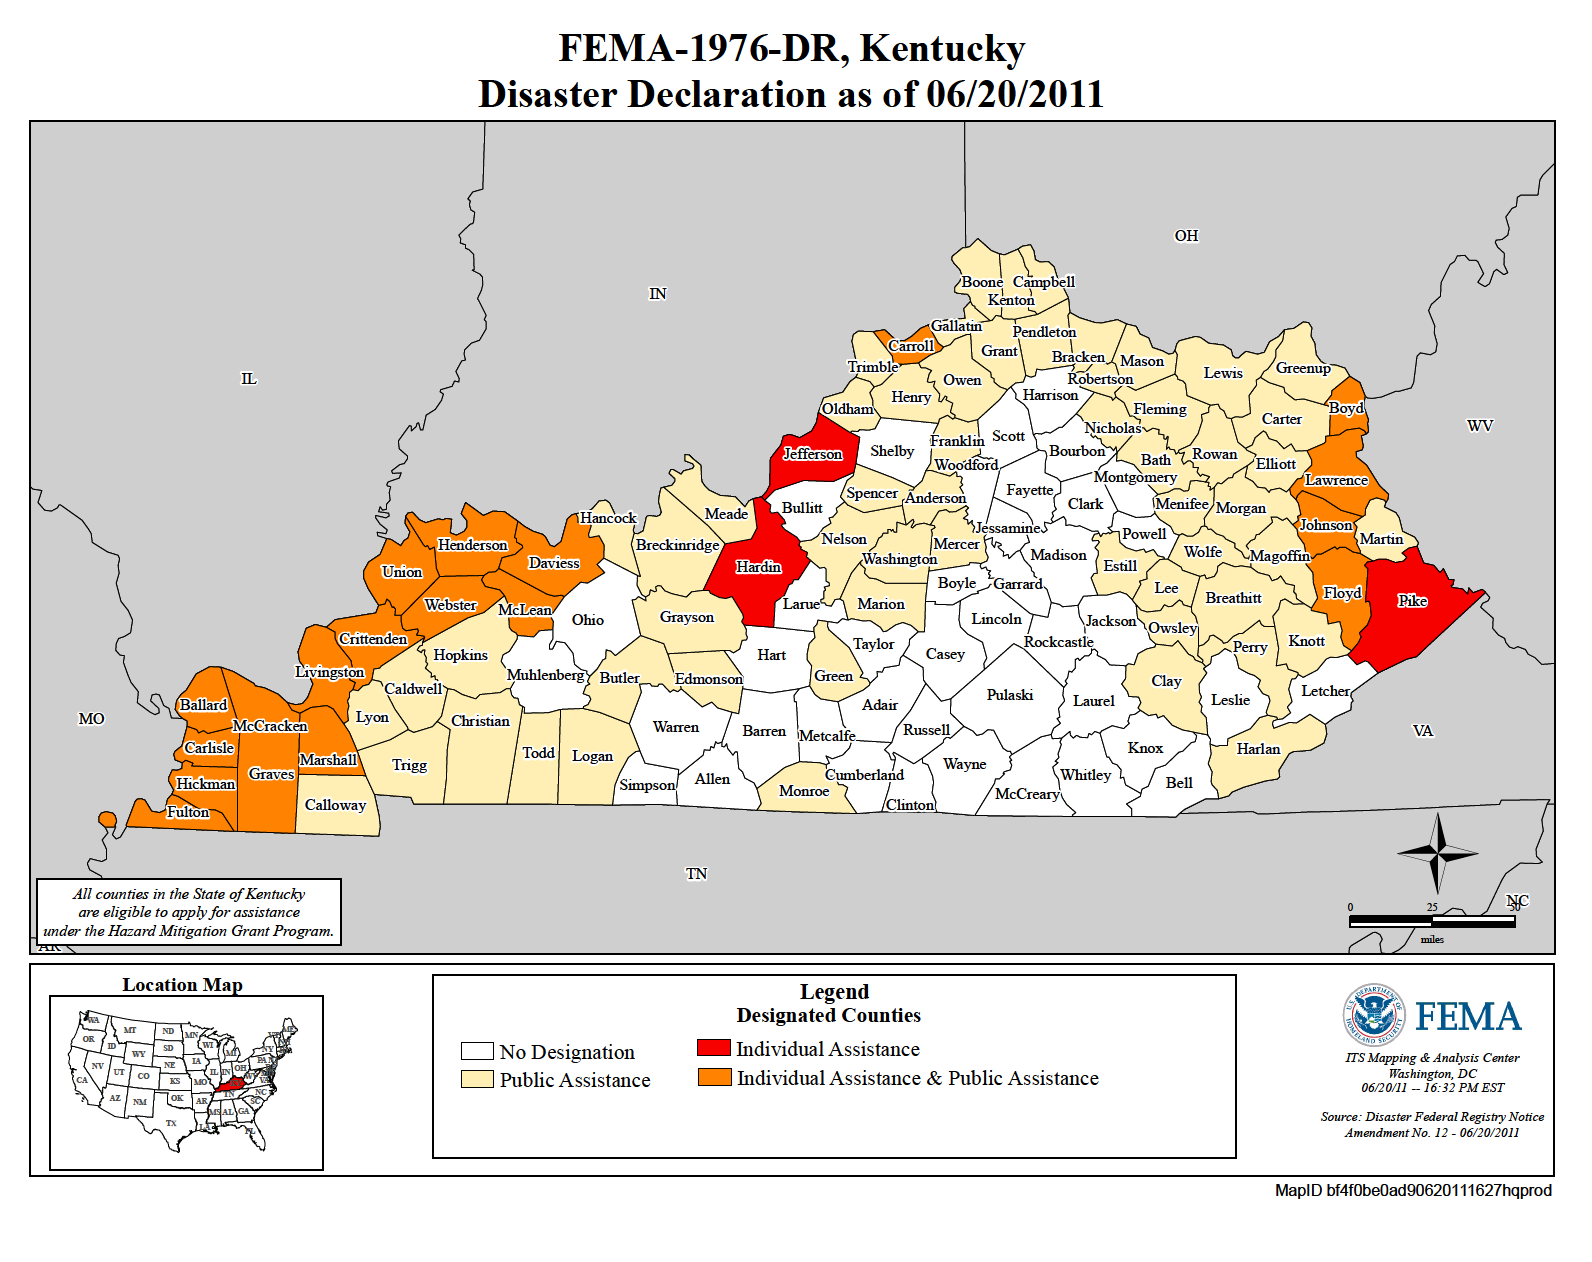 Kentucky Severe Storms Tornadoes and Flooding DR1976 FEMAgov